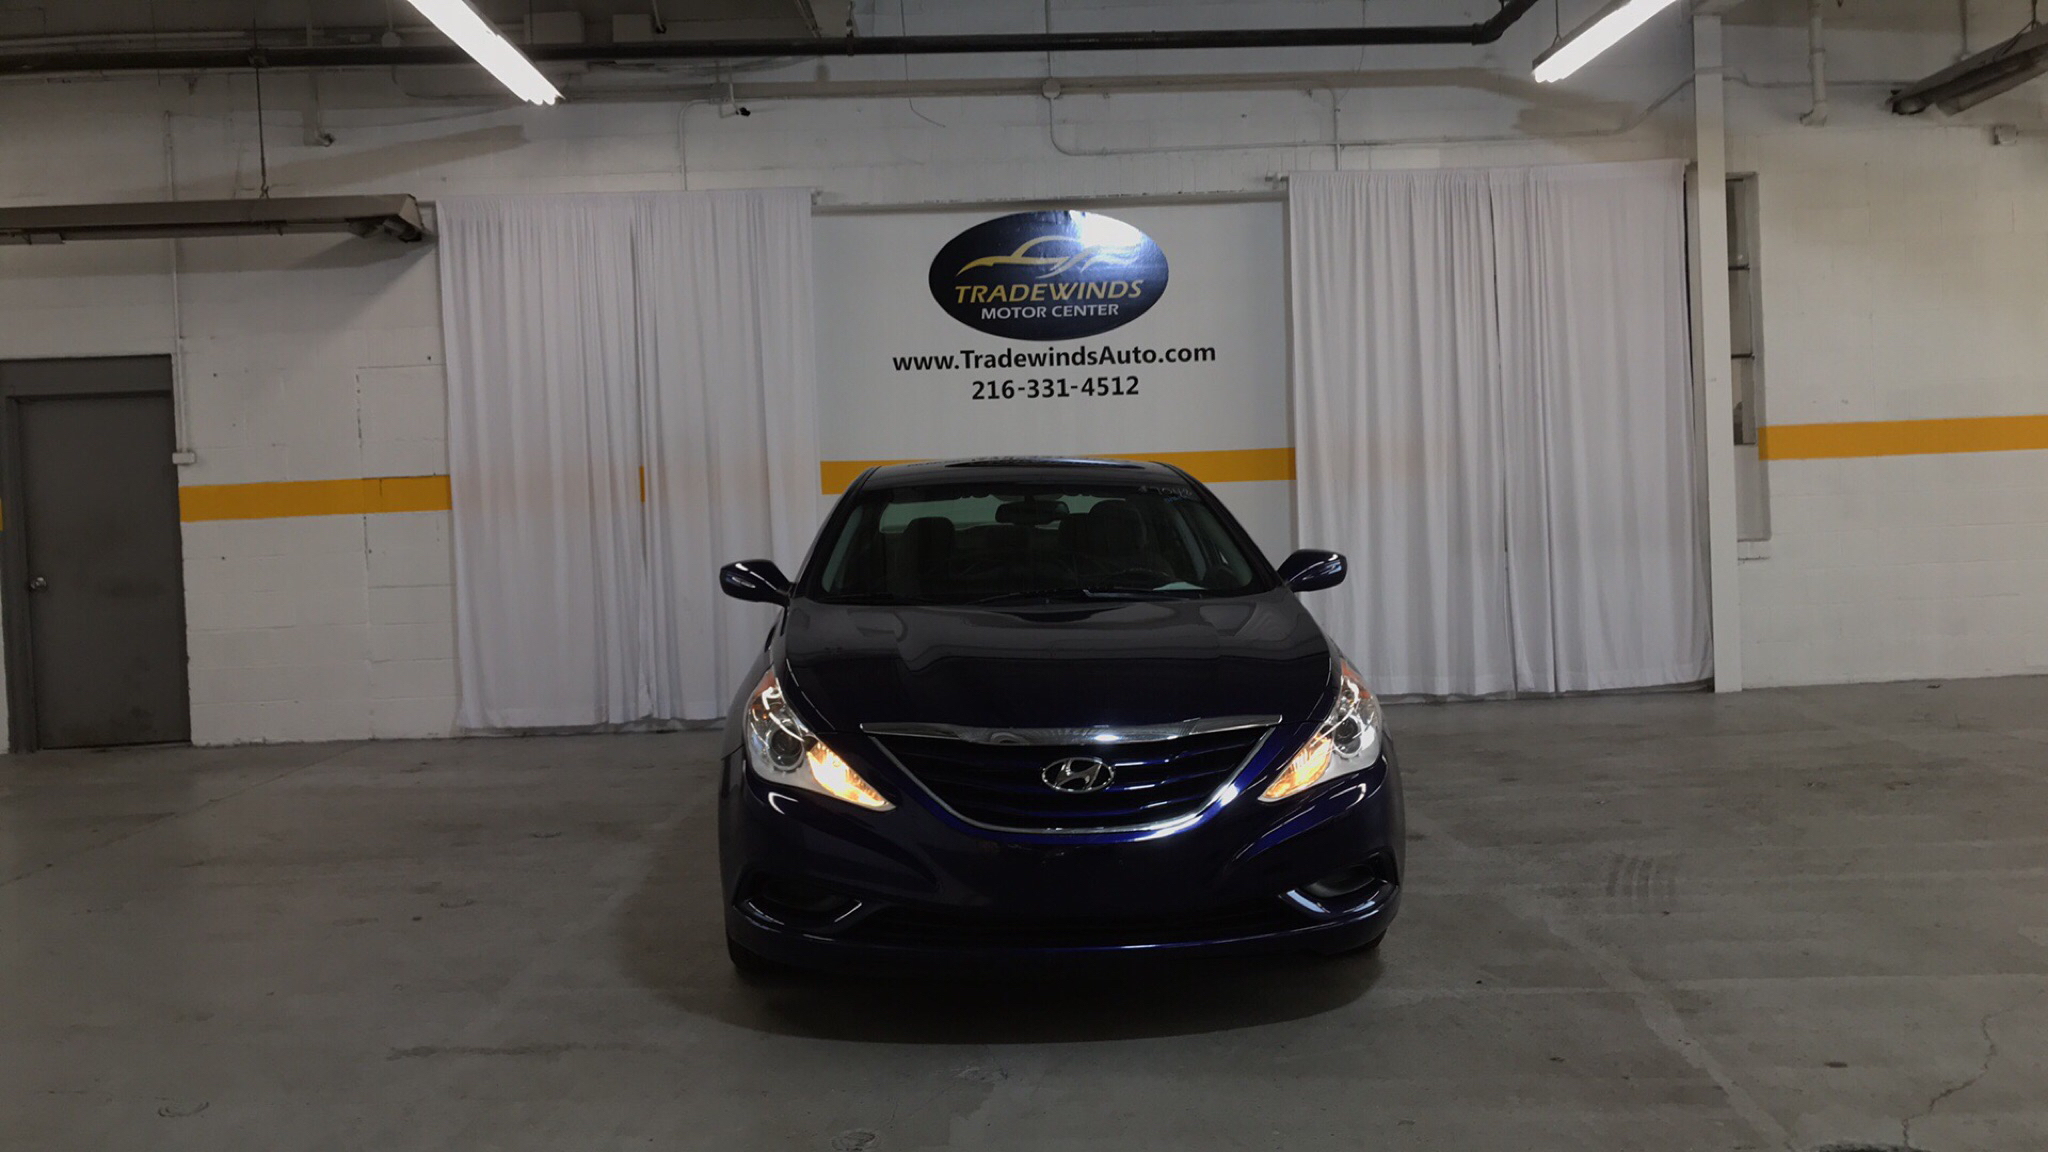 2012 HYUNDAI SONATA GLS for sale at Tradewinds Motor Center